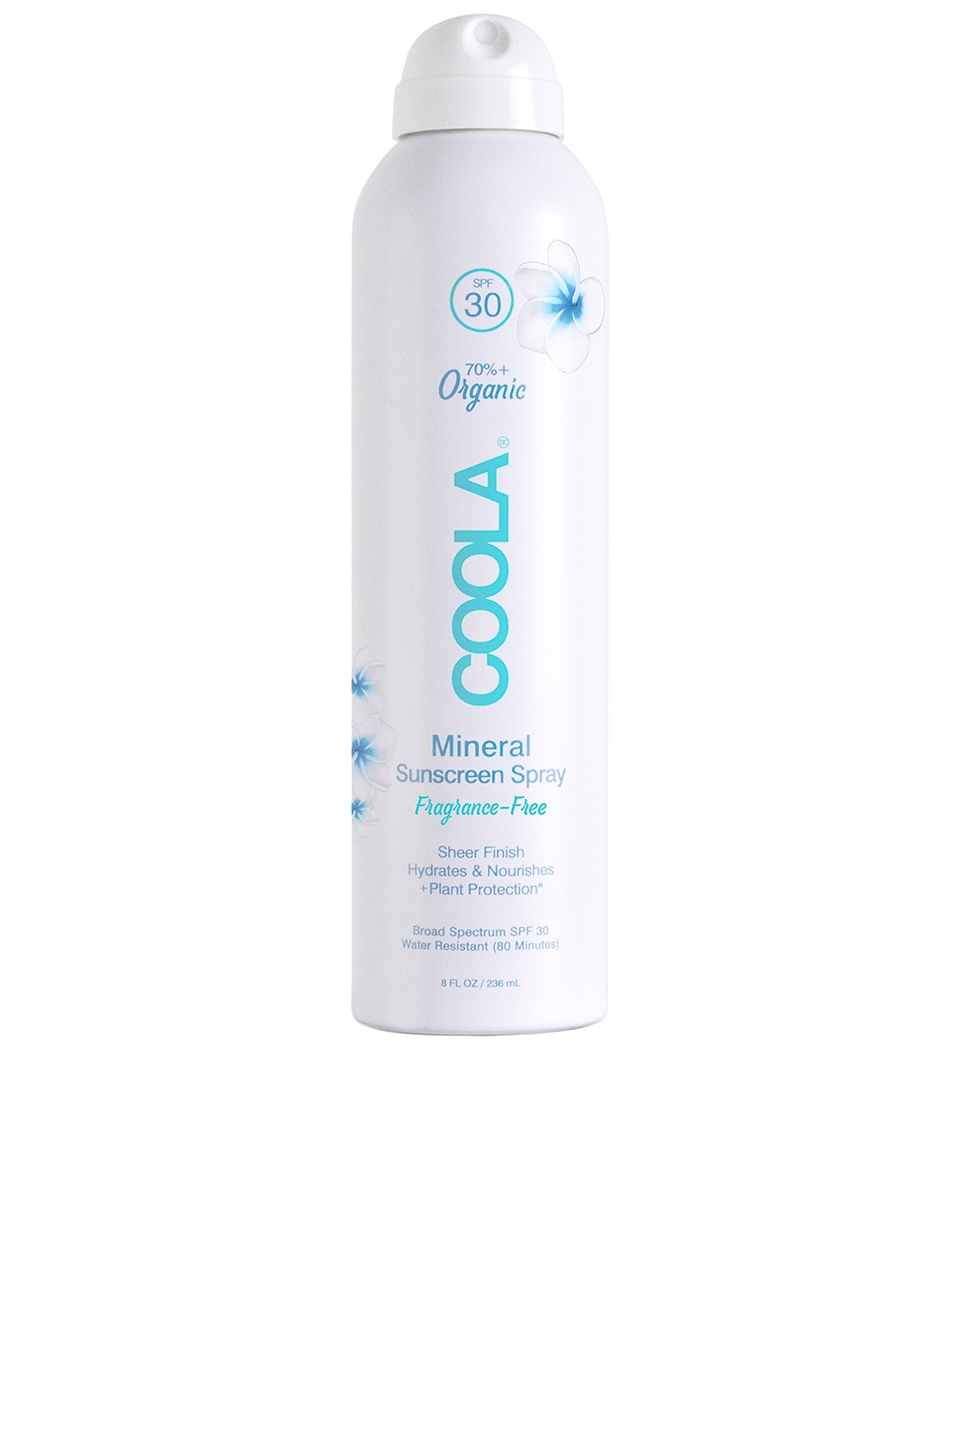 COOLA Organic Mineral SPF30 Body Sunscreen Spray